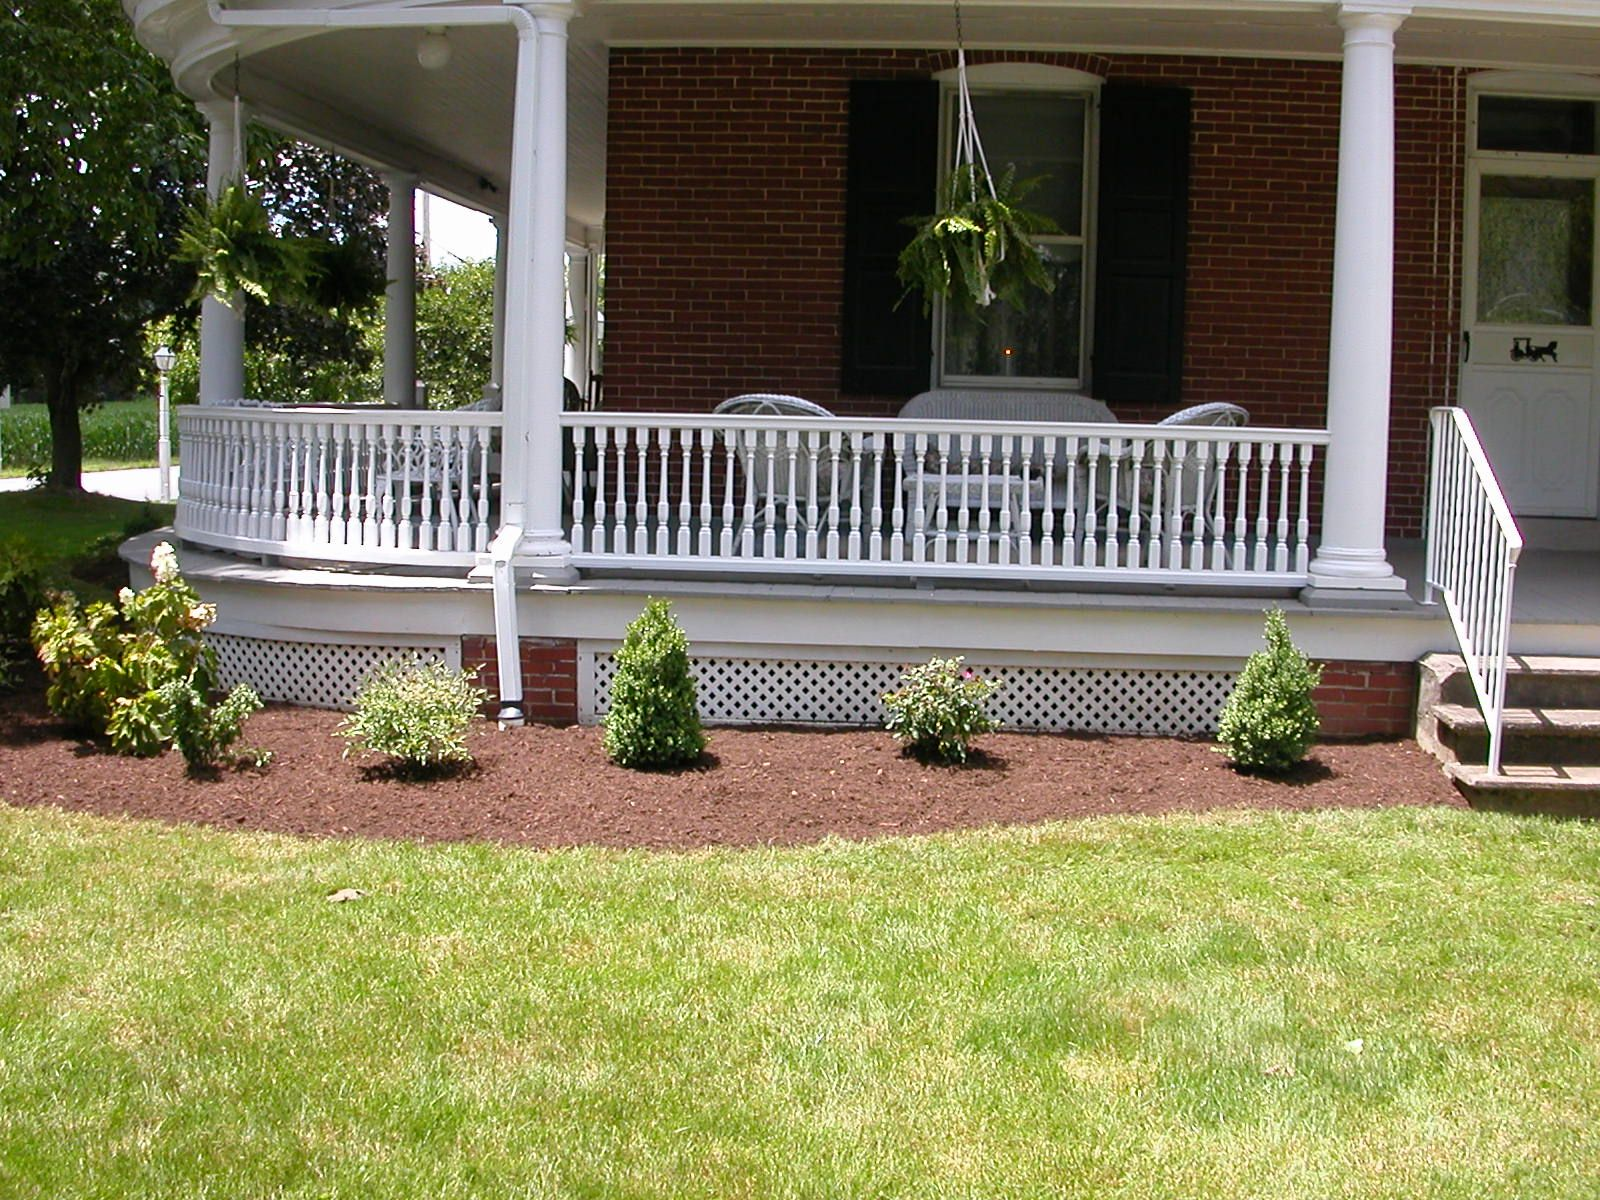 Landscaping ideas for wrap around porches our new for Small front porch landscaping ideas